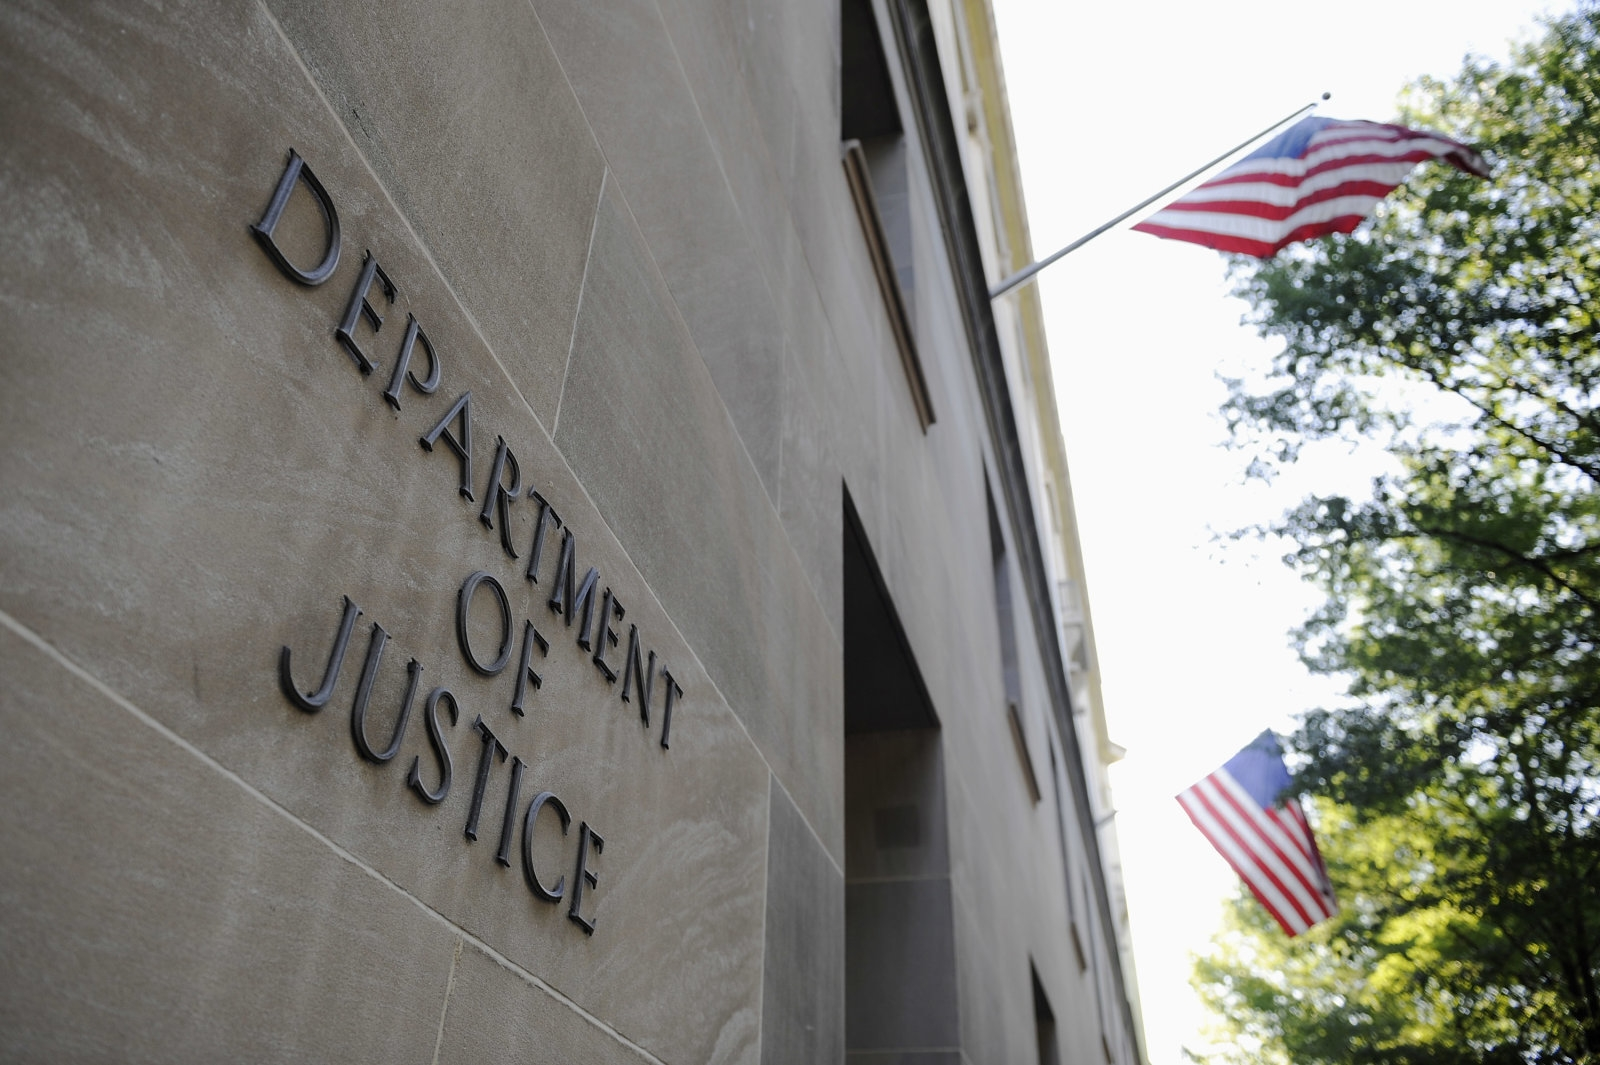 Malware charged for 13-year spying spree | DeviceDaily.com